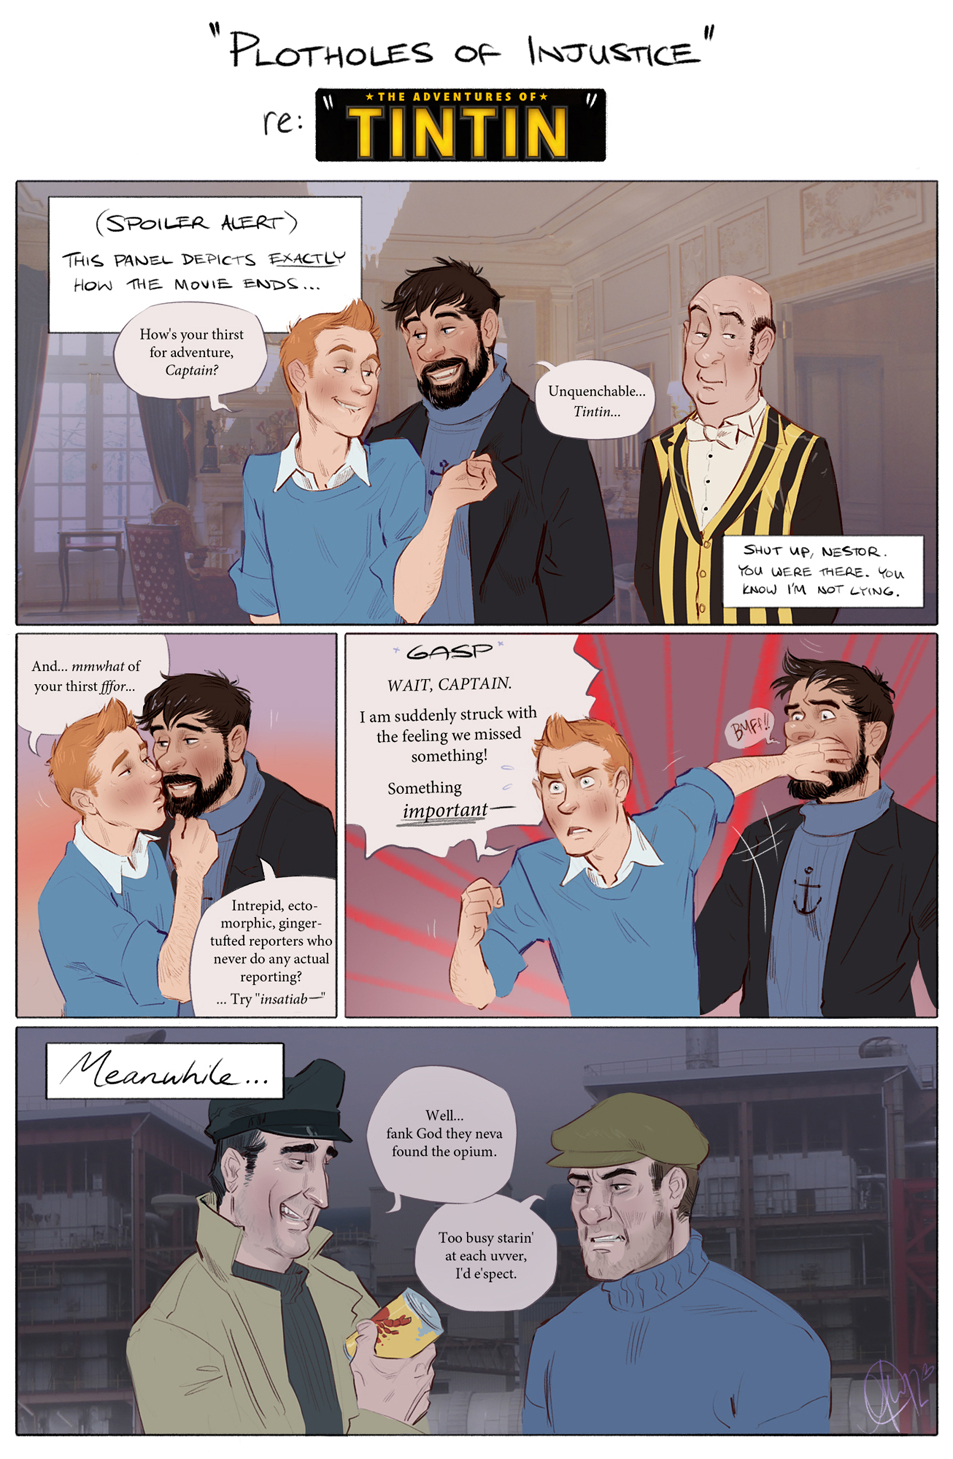 Tintin - Plotholes of Injustice by Eeba-ism